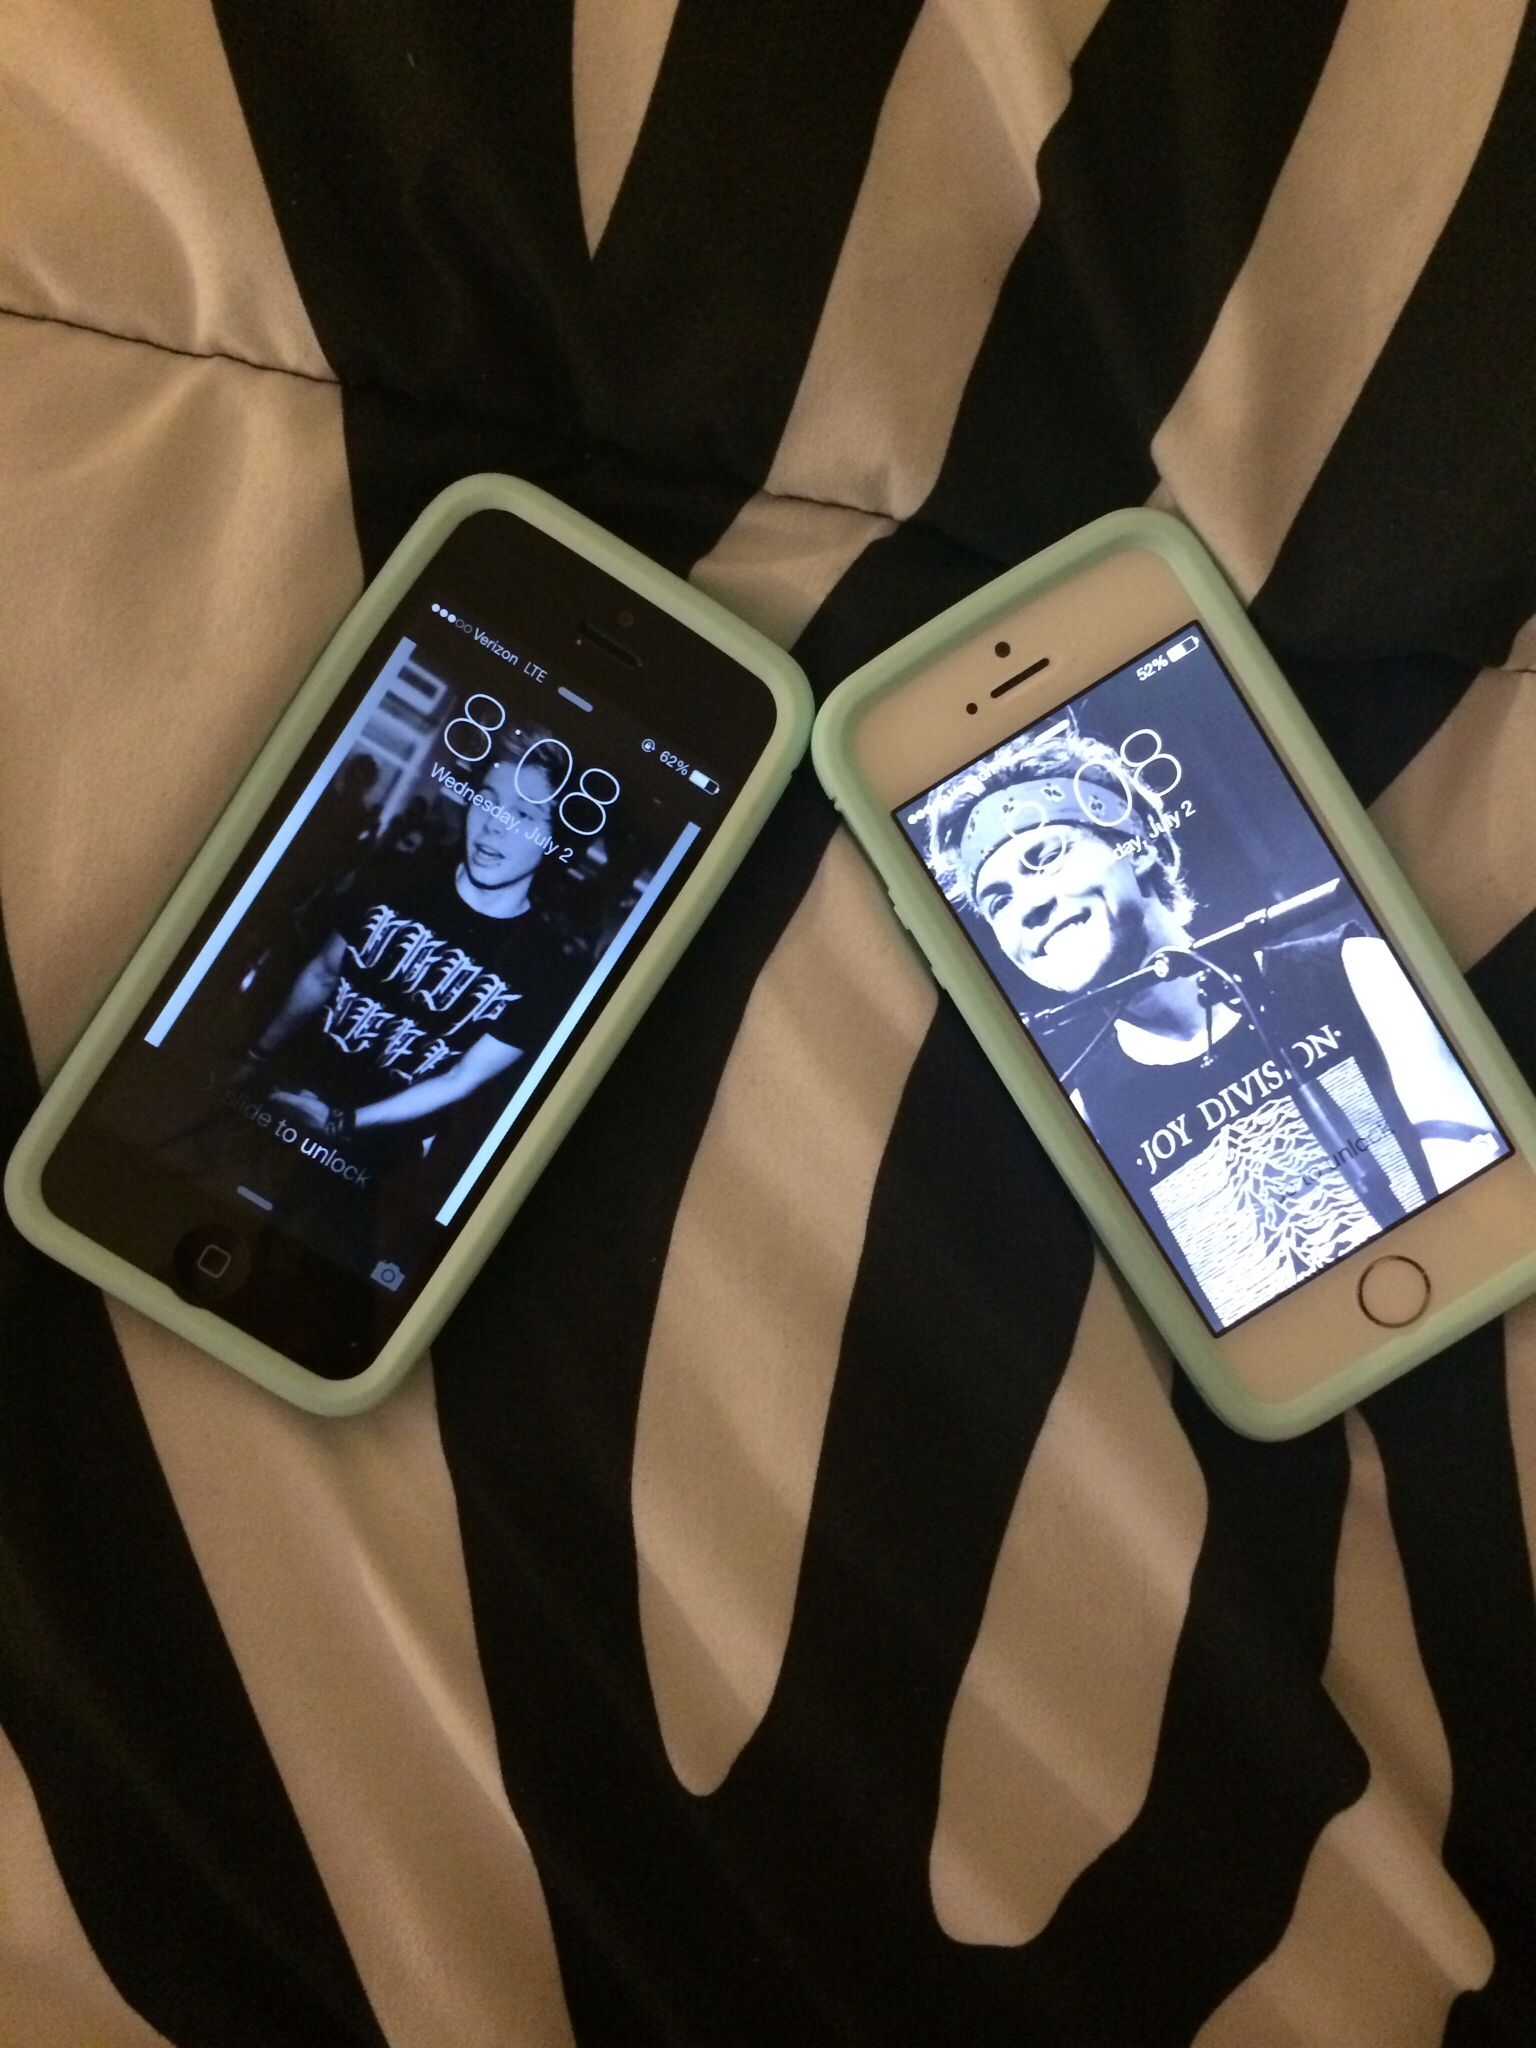 Me and my bestfriends matching cases and our baes ily Julie